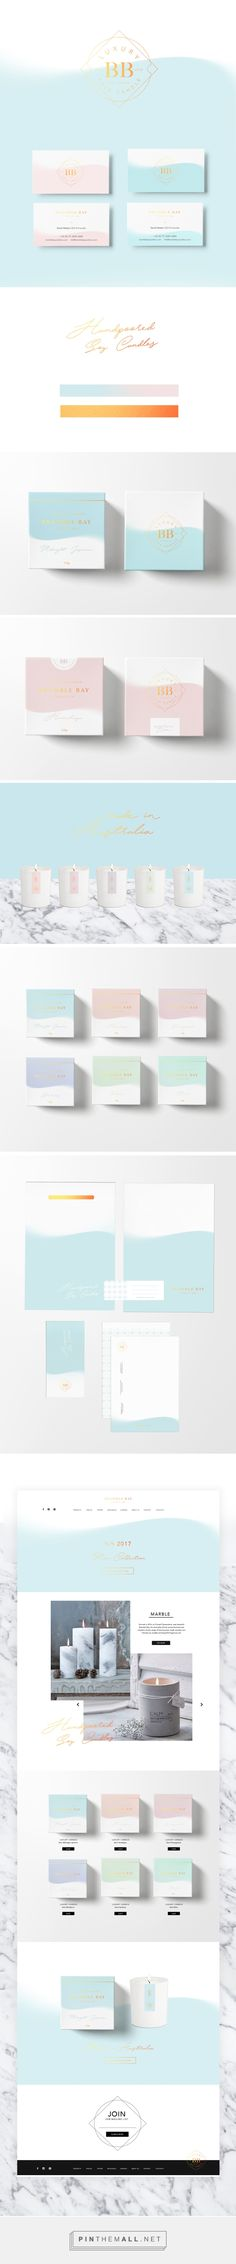 Bramble Bay Candles Branding and Packaging by Viola Wyszynska | Fivestar Branding Agency – Design and Branding Agency & Curated Inspiration Gallery